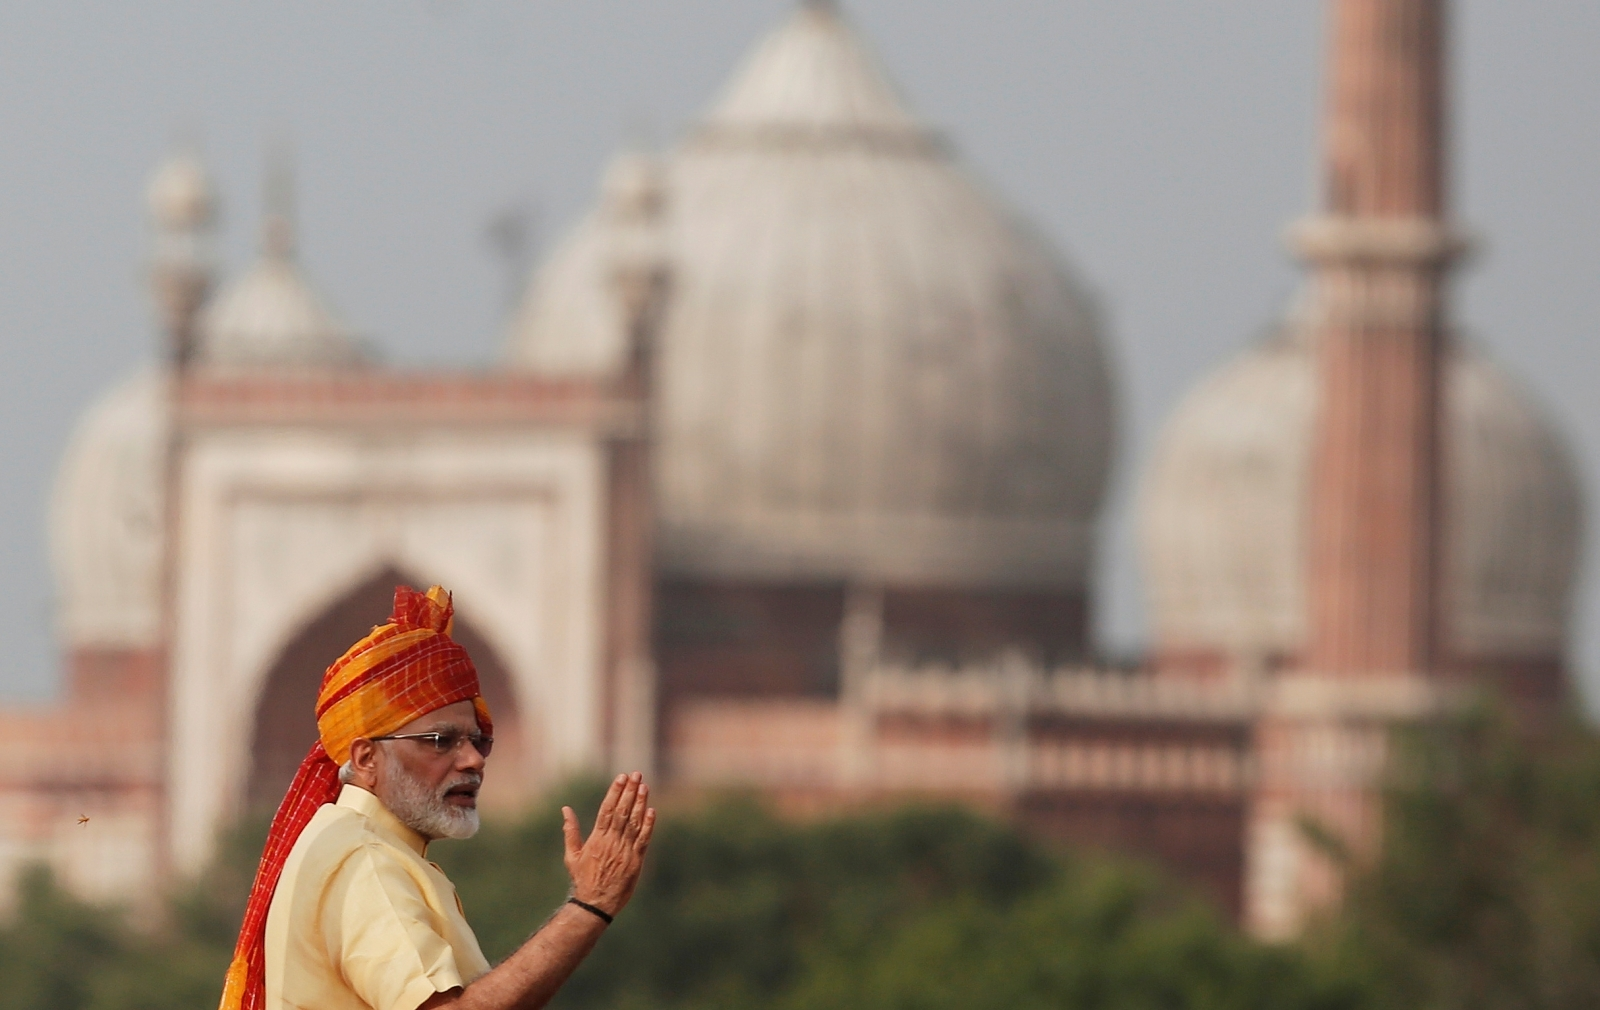 Narendra Modi Red Fort on Independence Day